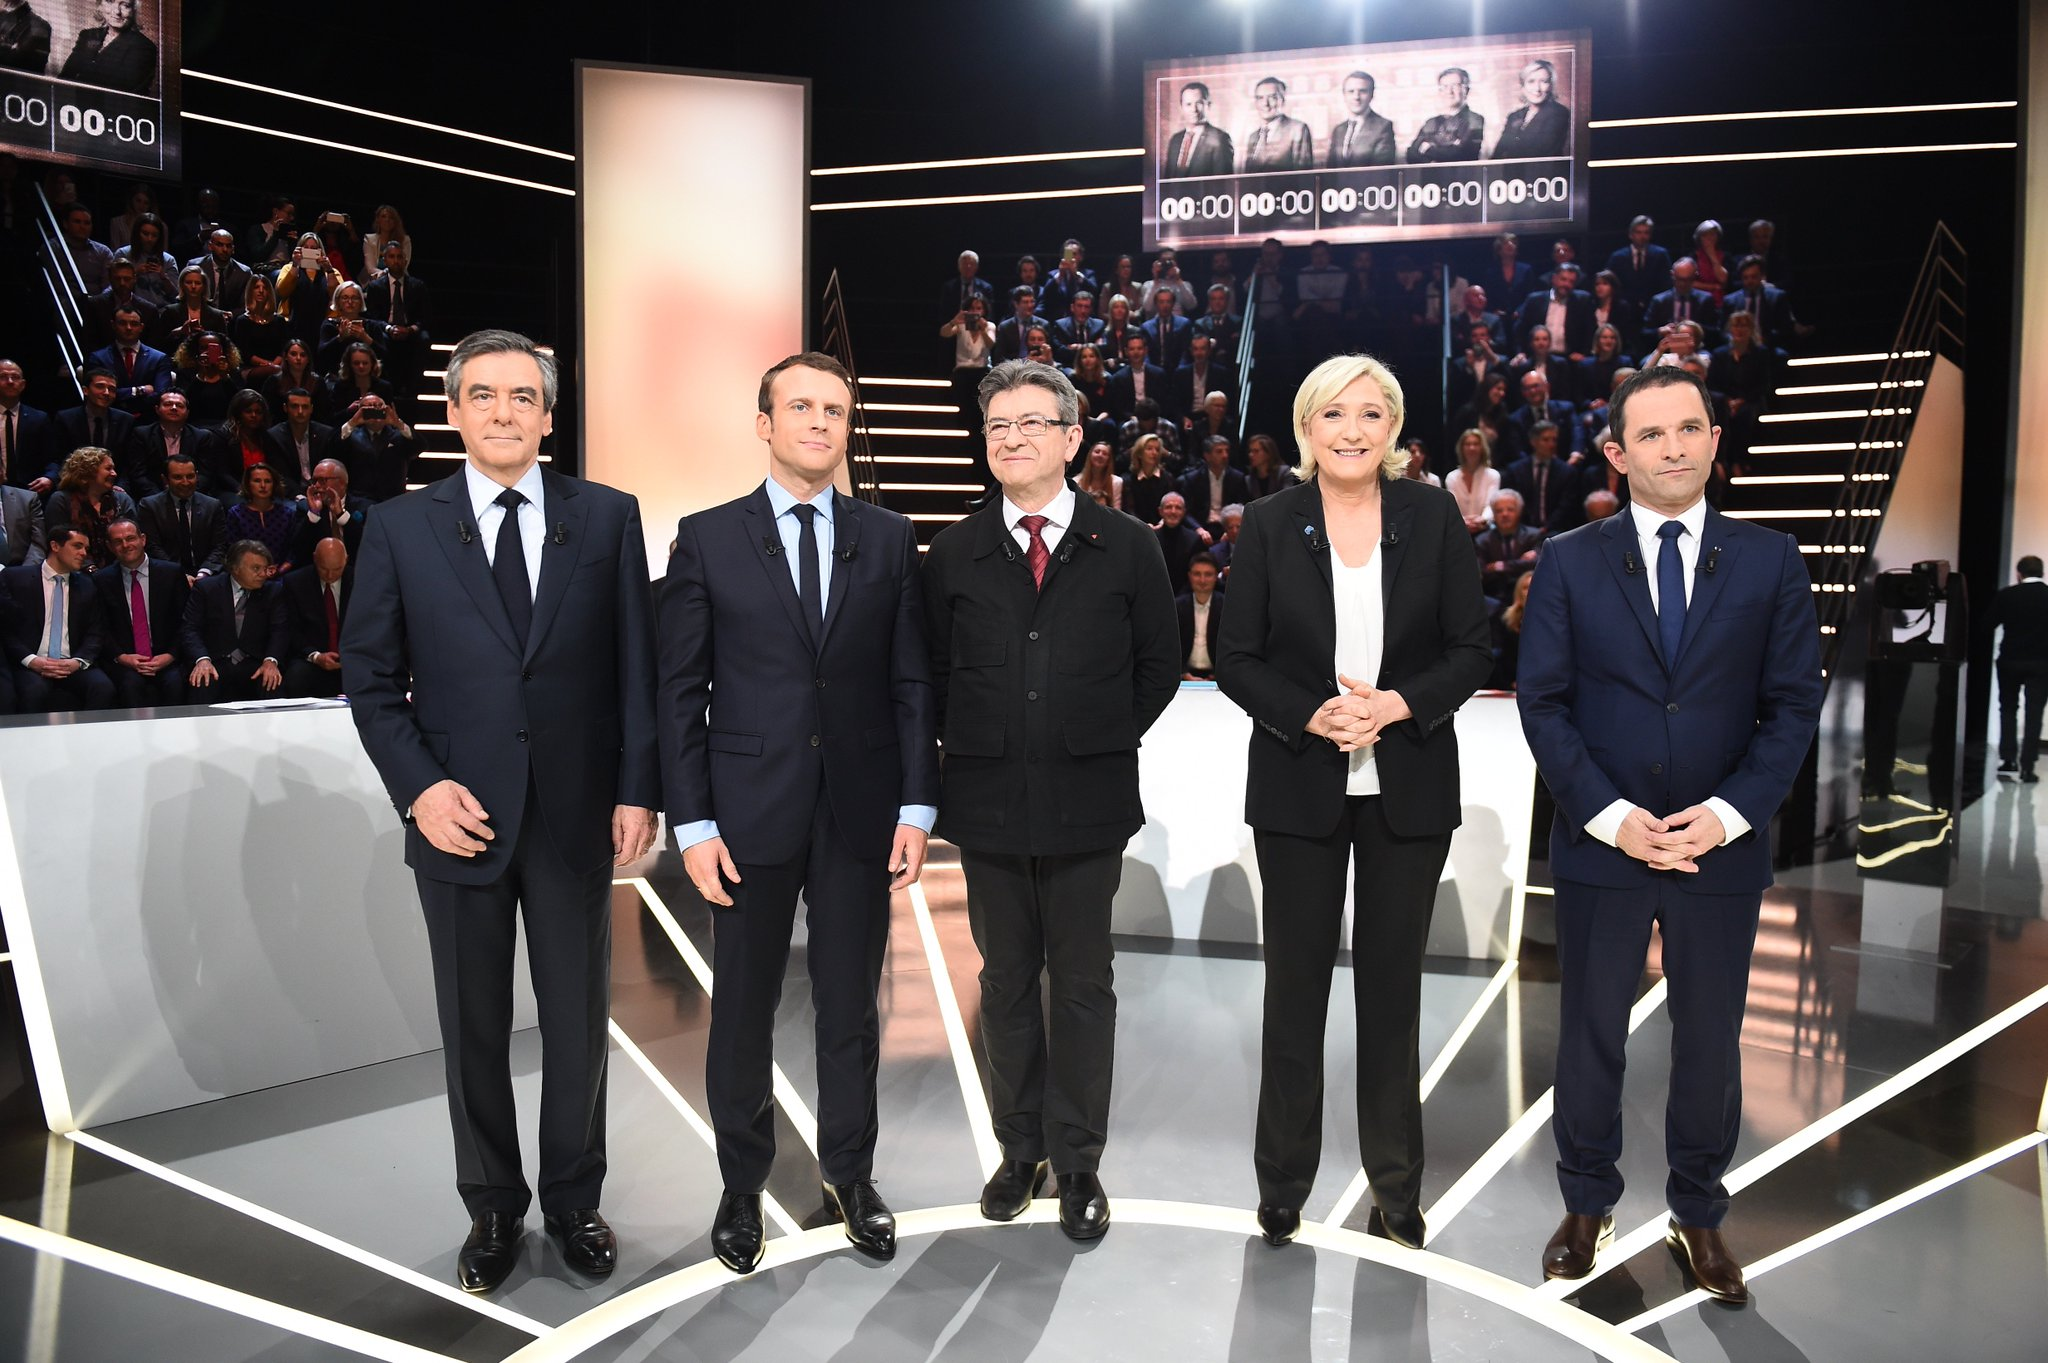 The marathon French debate is now over. Here's what you need to know https://t.co/Quth83tcAS #LeGrandDebat https://t.co/EuX95ZzUbR